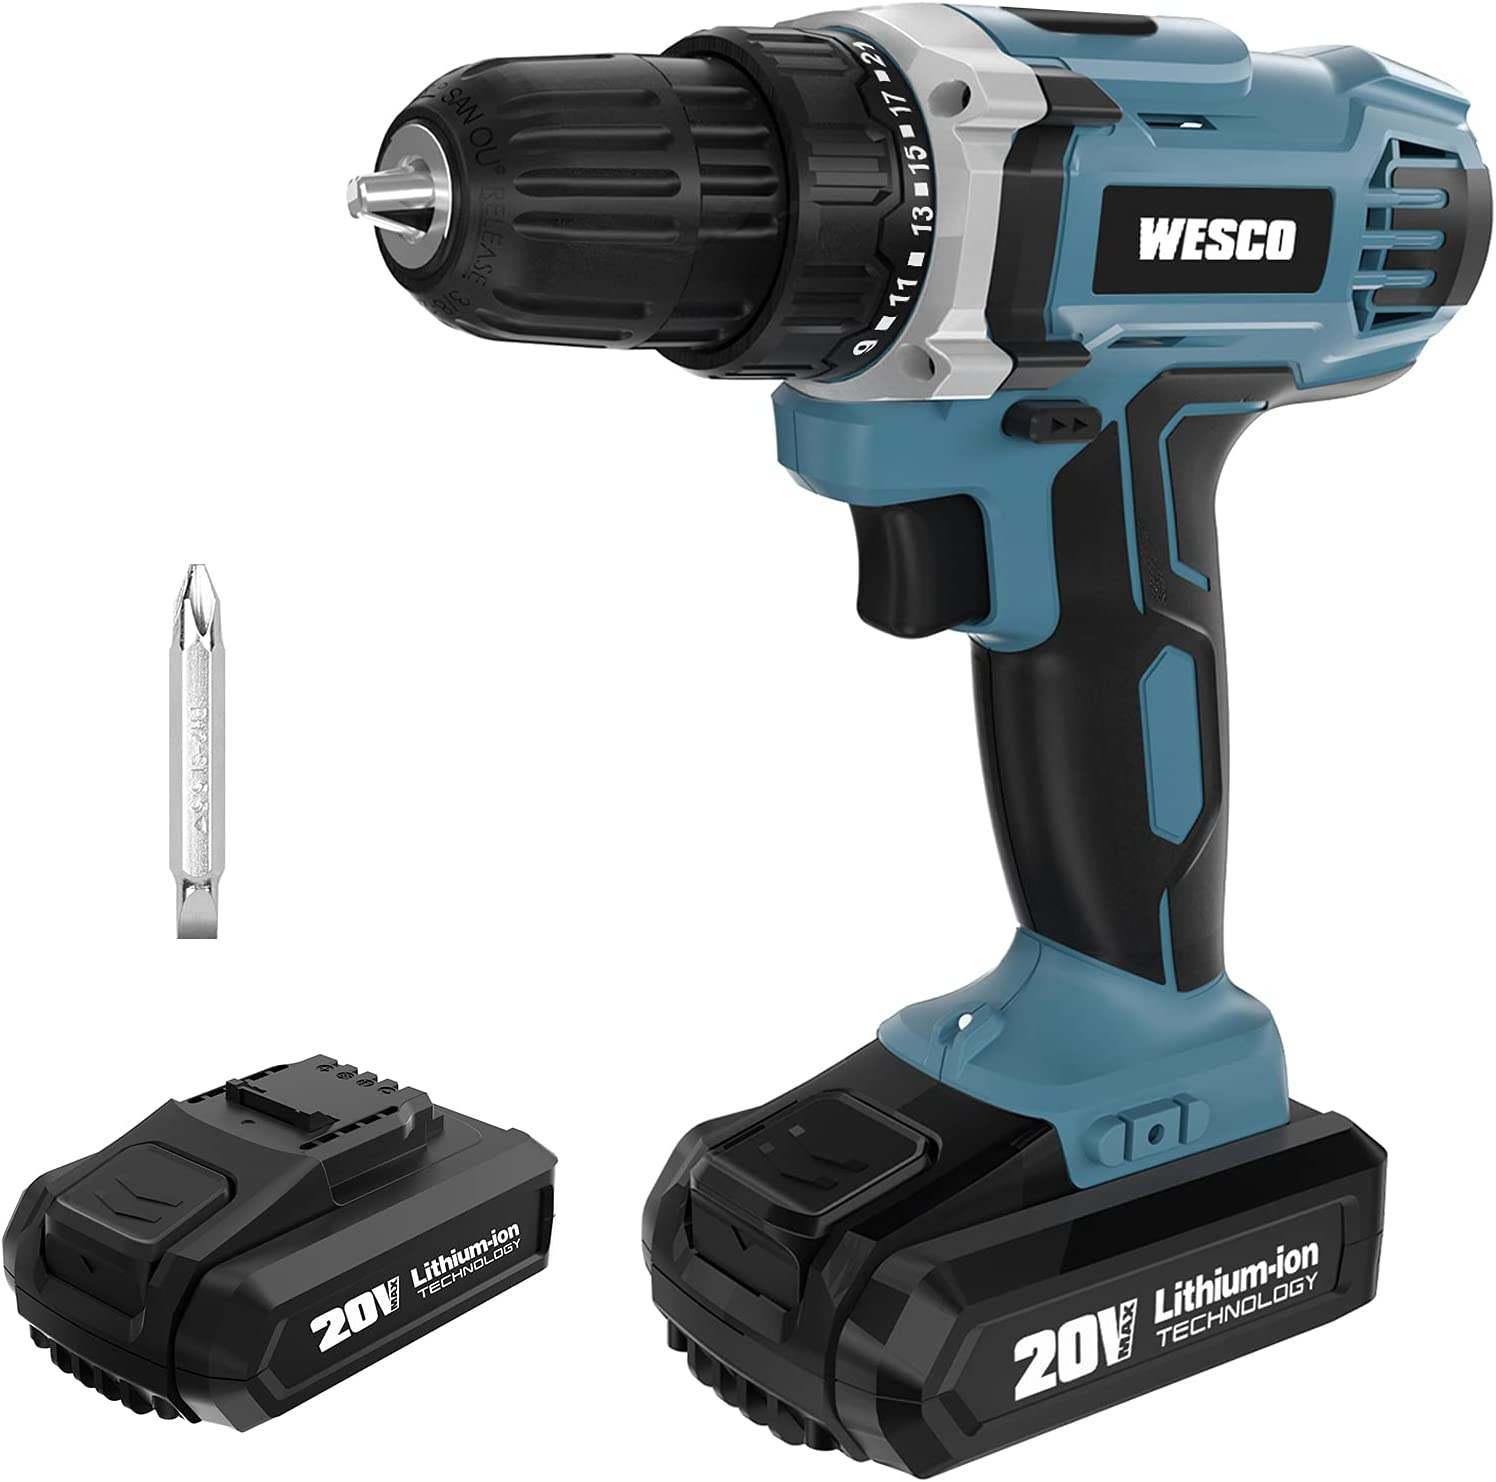 POWER Cordless Drill 20V Screwd WESCO High quality Ranking TOP4 Driver